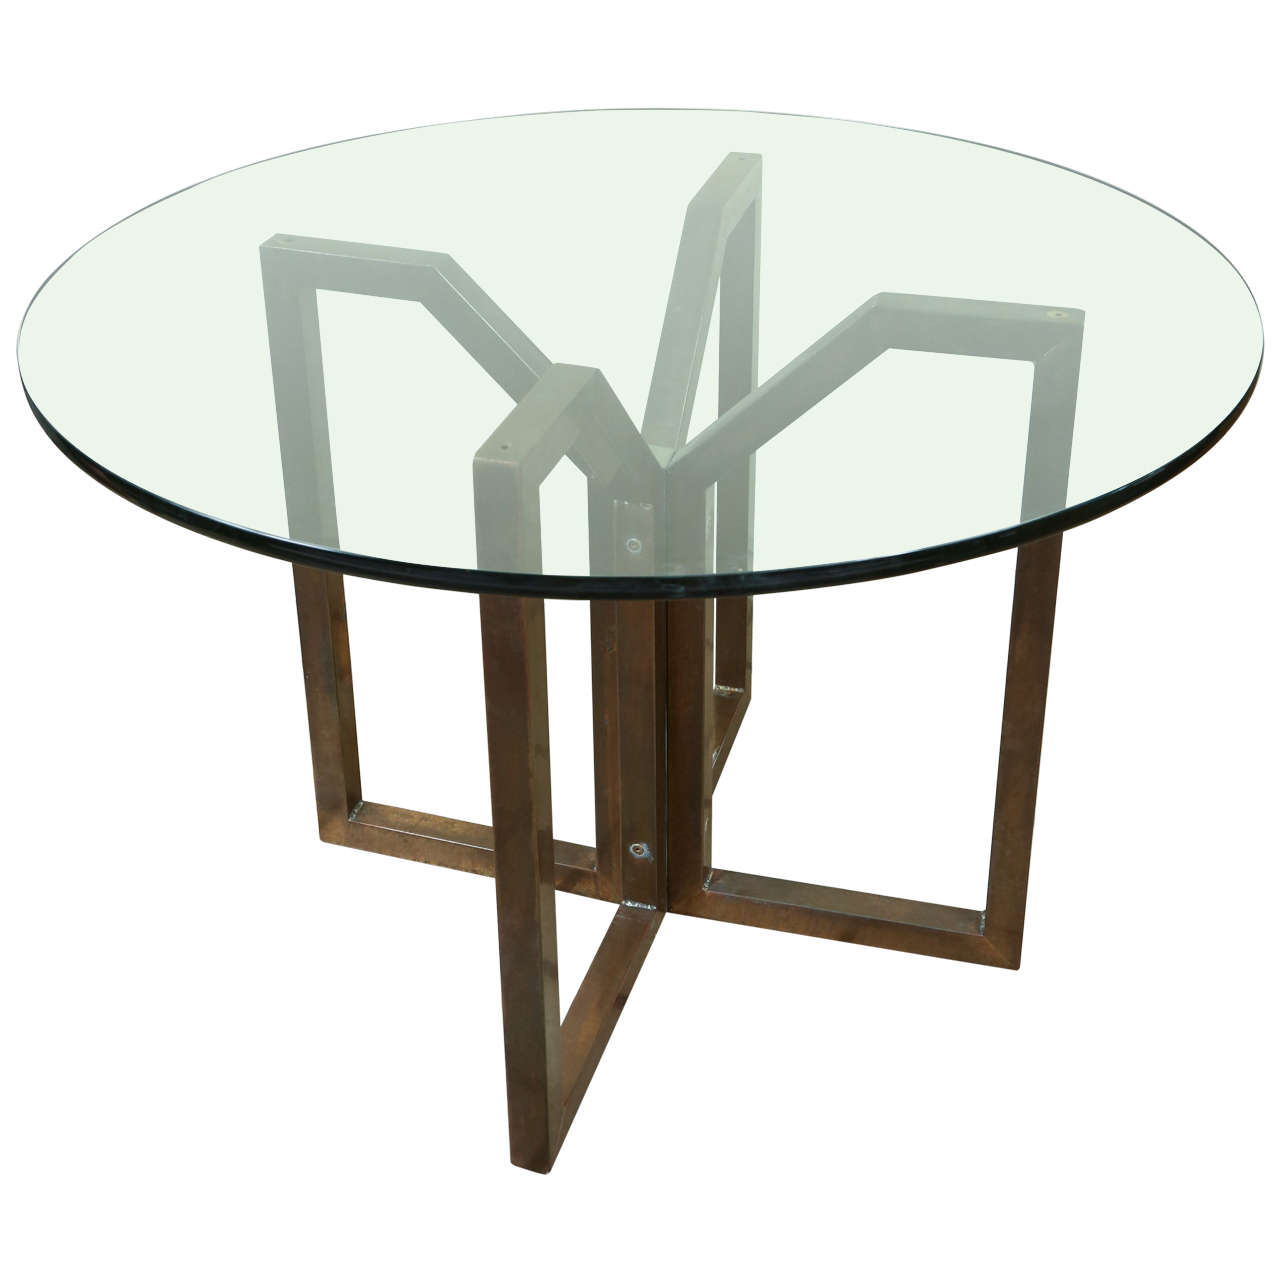 Gallery 1 Furniture Centre Geometric Bronze Finished Table At 1stdibs